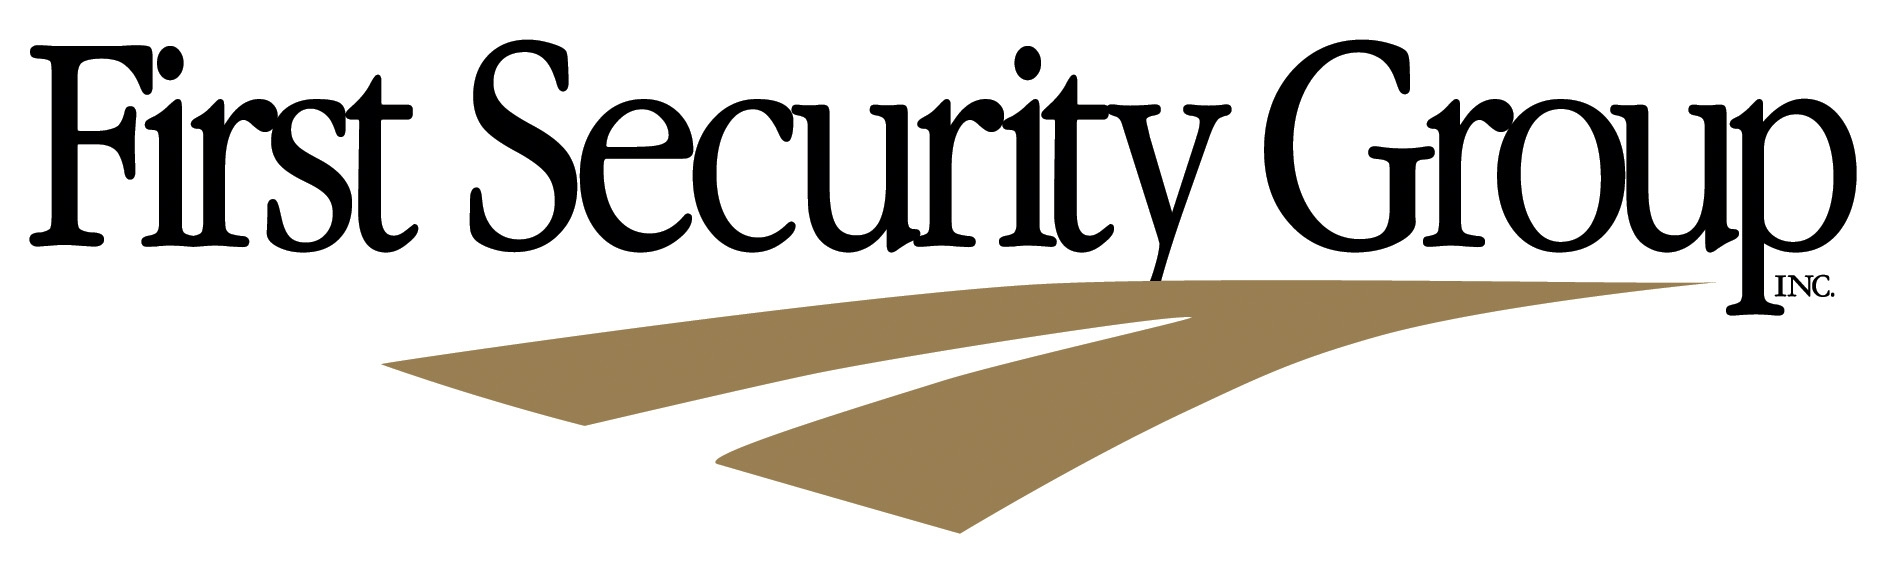 First Security Group, Inc. Logo